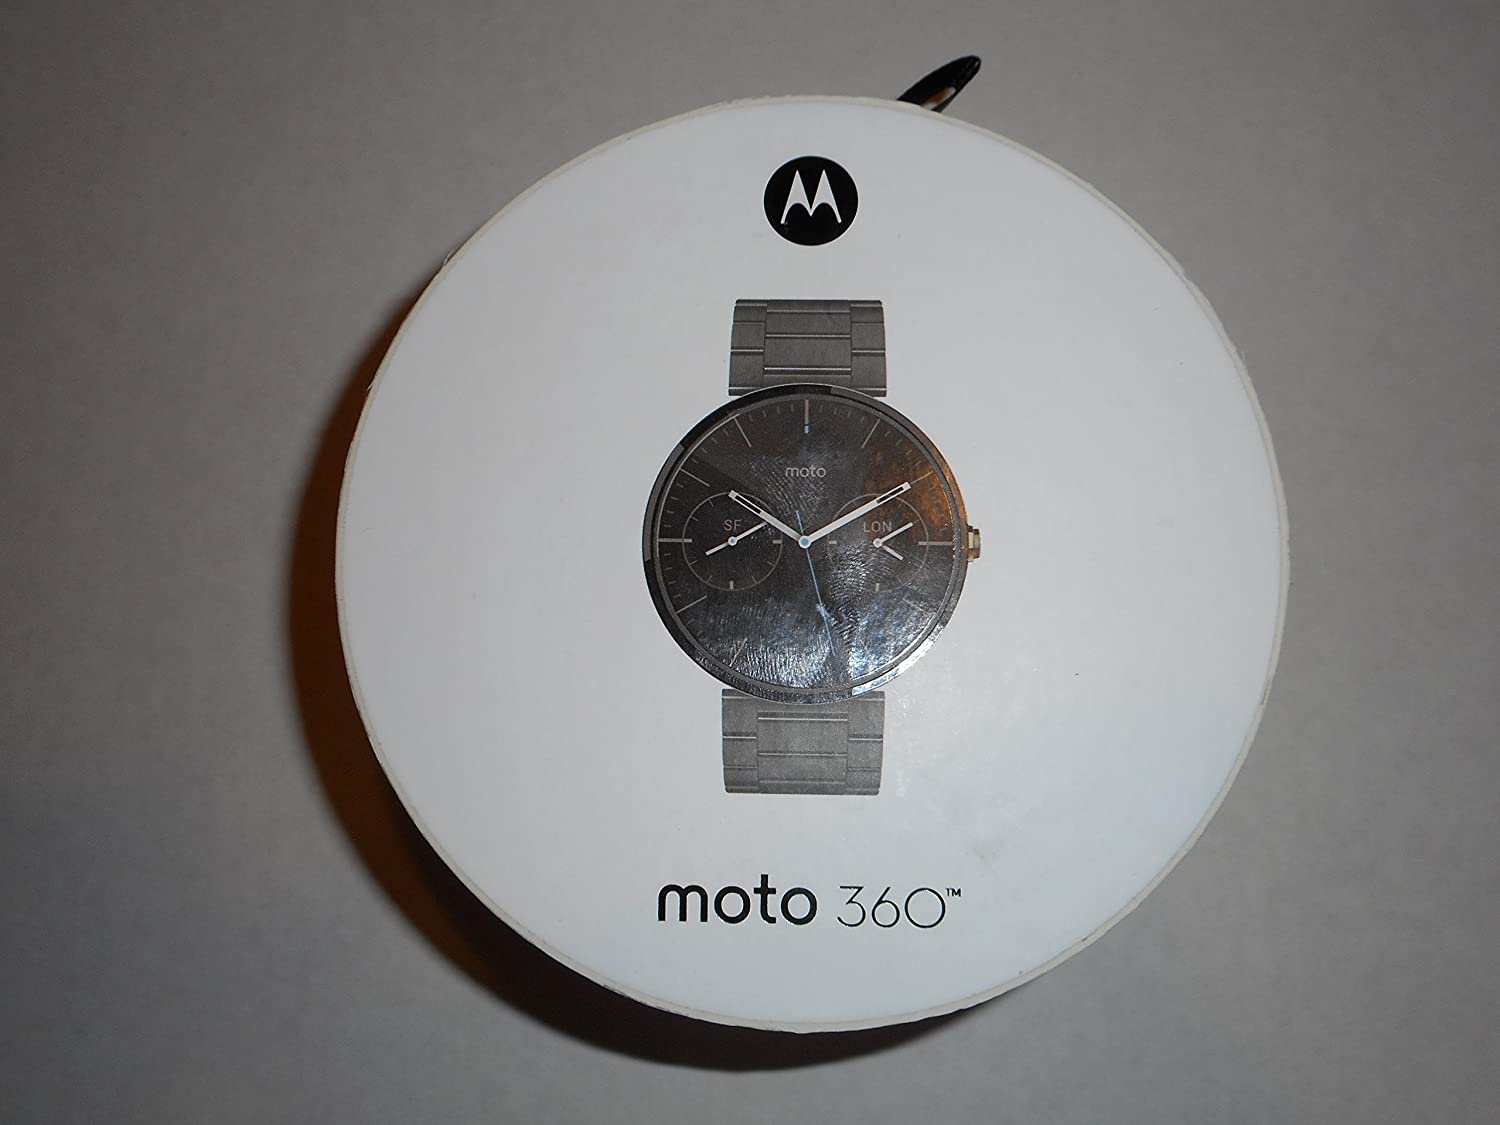 Amazon.com: Motorola Moto 360 Smartwatch Stainless Steel ...